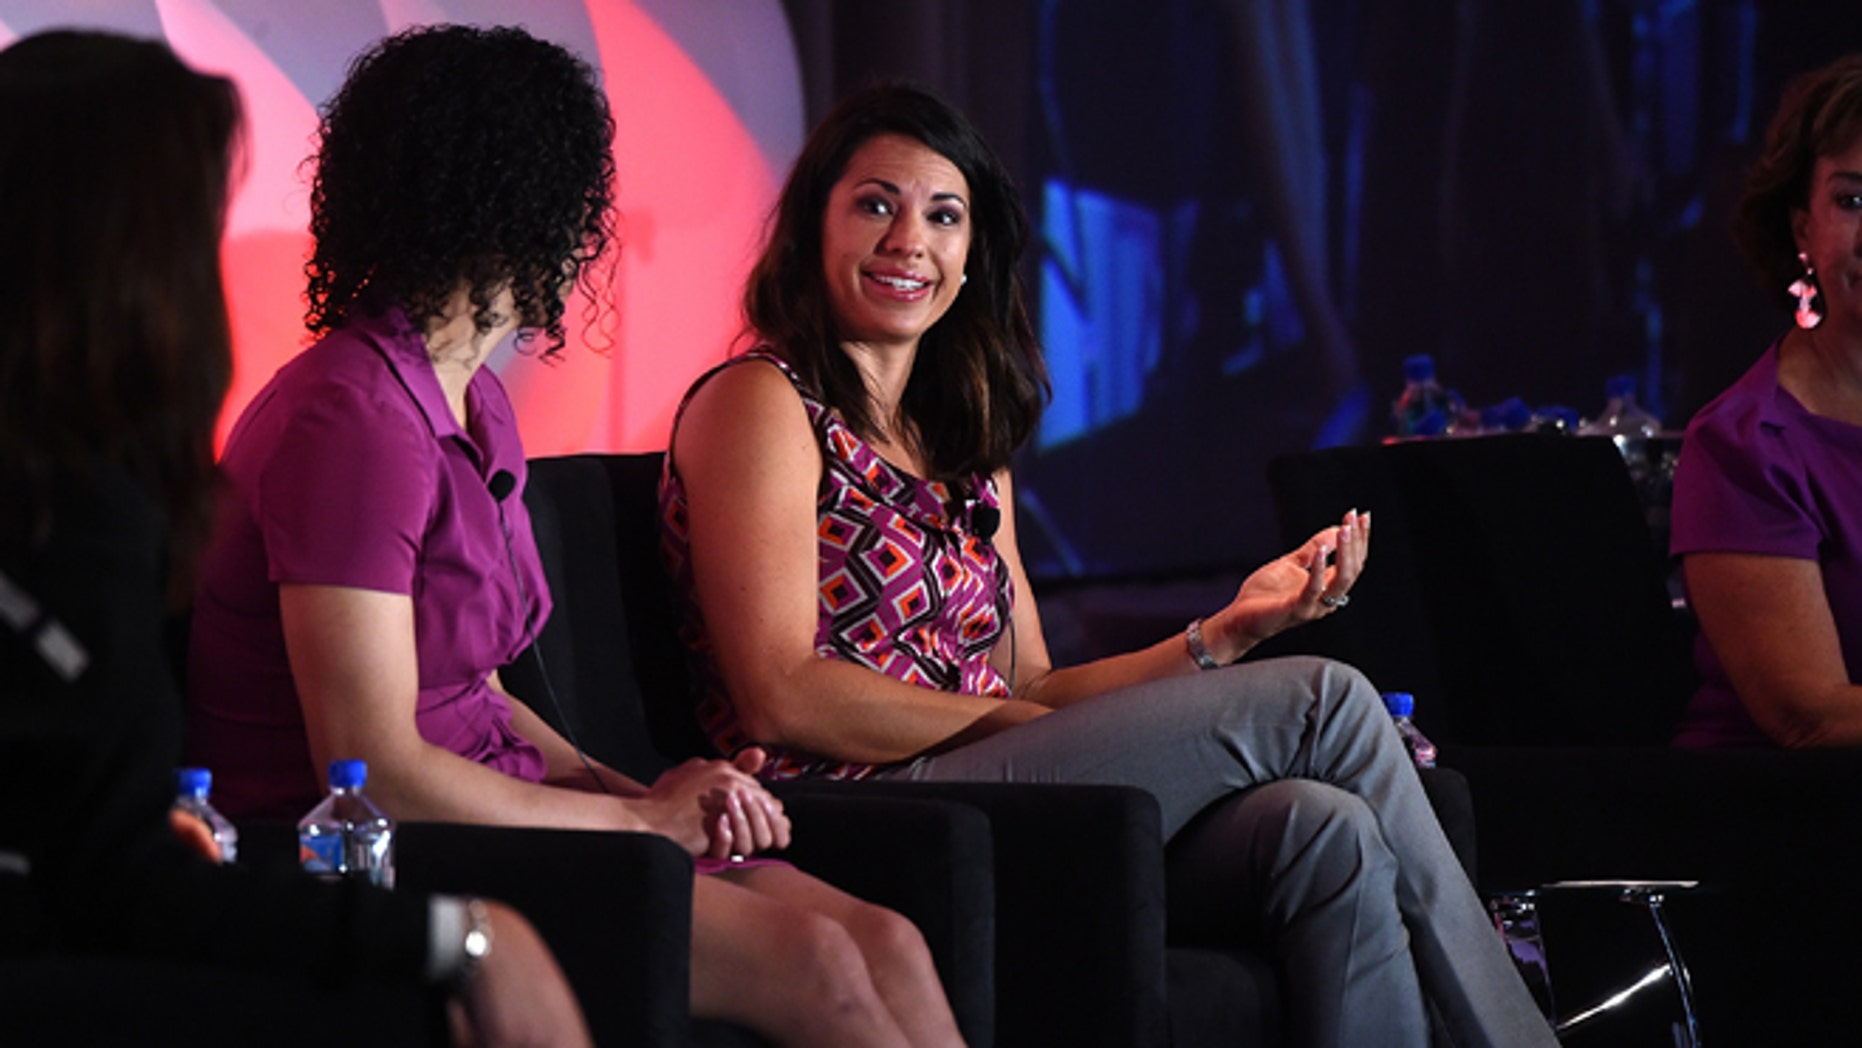 NEW YORK, NY - SEPTEMBER 15:  Olympic Gold & Silver Medalist Analyst & Reporter, ESPN Jessica Mendoza moderator at the 2014 Women in Cable Telecommunications Leadership Conference on September 16, 2014 in New York City.  (Photo by Larry Busacca/Getty Images for Women in Cable Telecommunications)